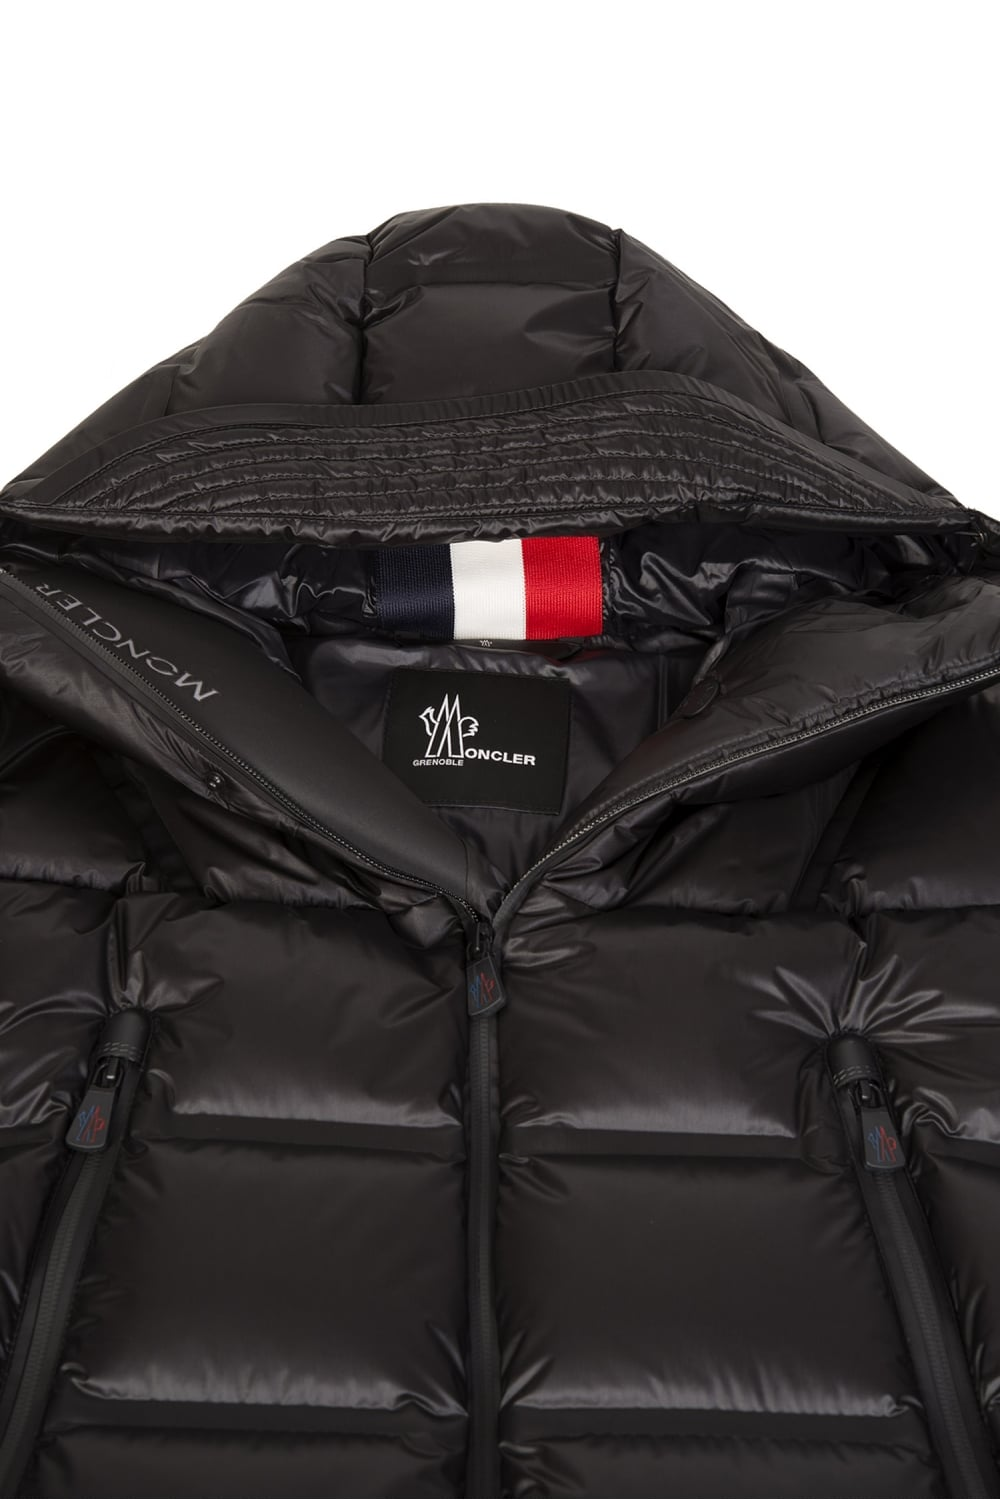 e1775b56e france moncler grenoble jacket price canada usage 40c78 07047